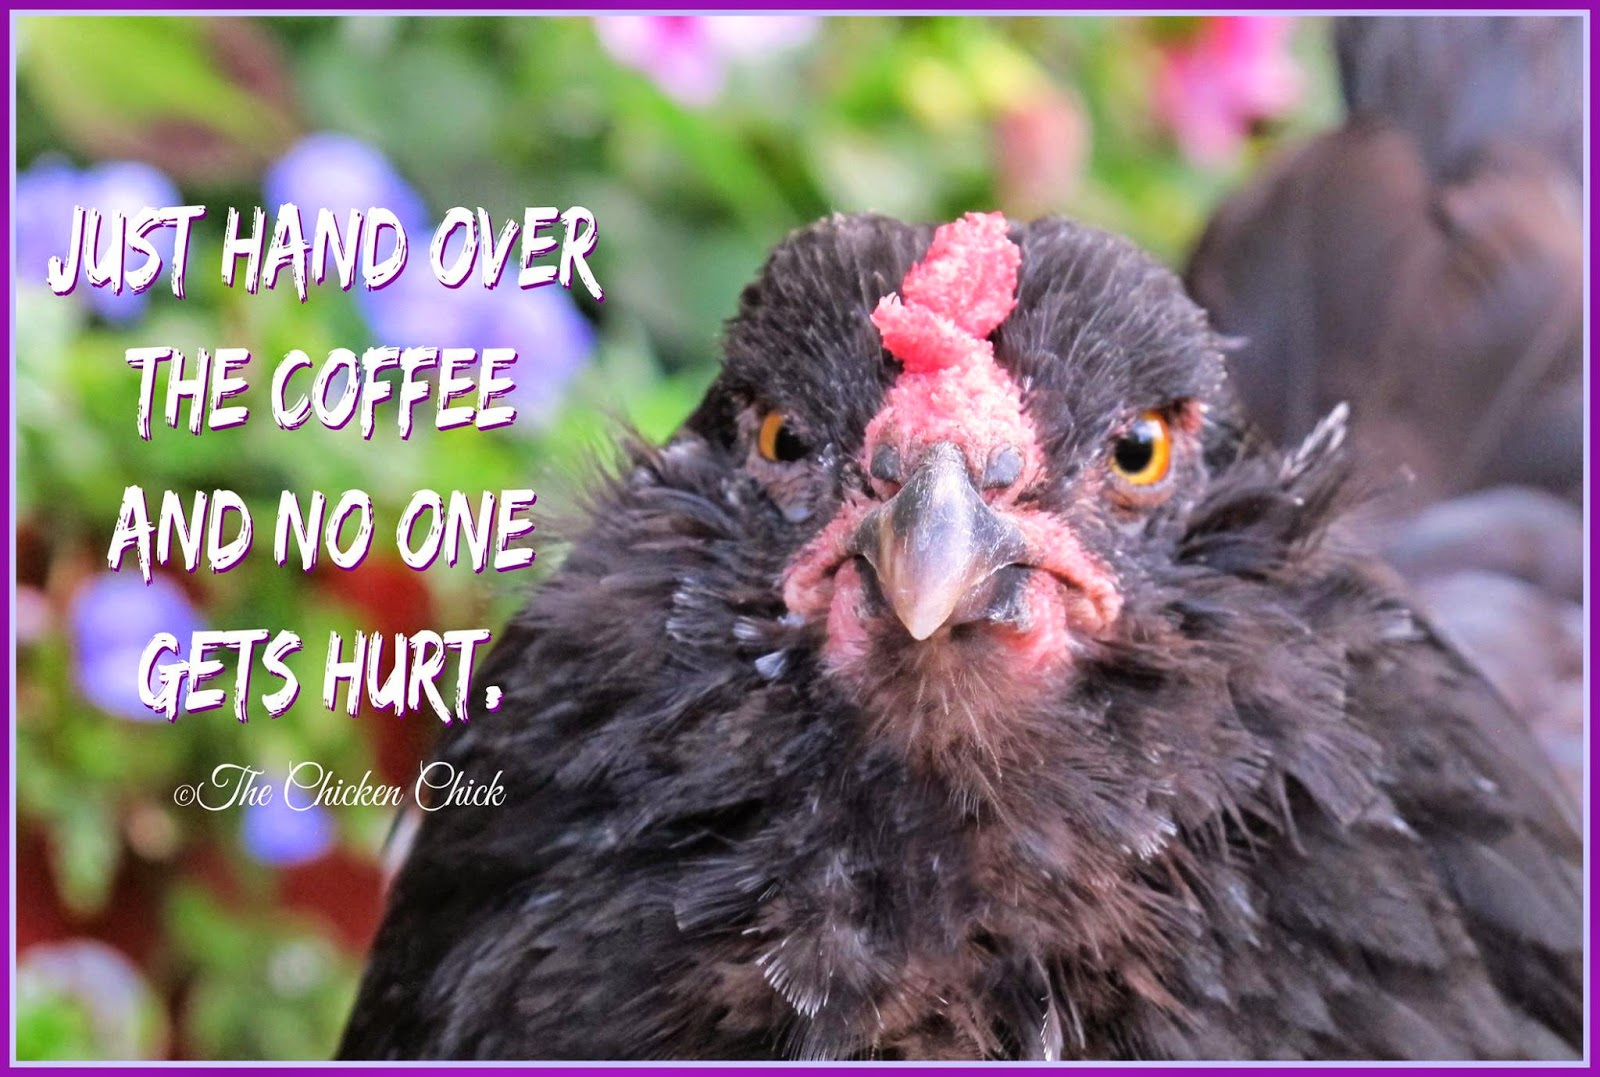 Just hand over the coffee and no one gets hurt